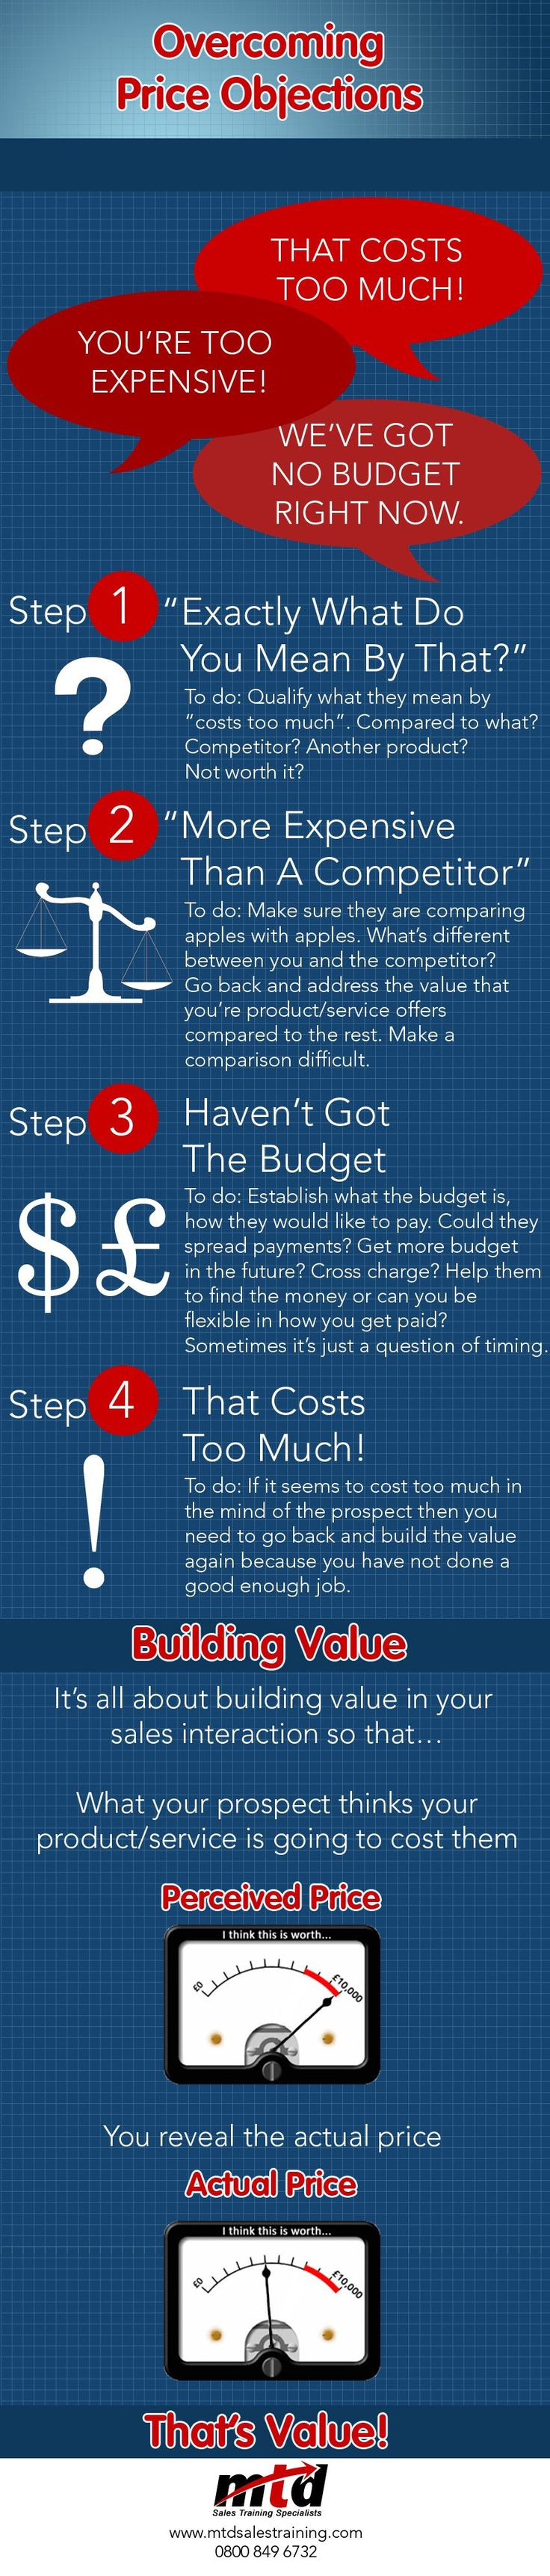 Overcoming #Sales Objections #infographic - Having a unique angle enables you to focus on value, not price.